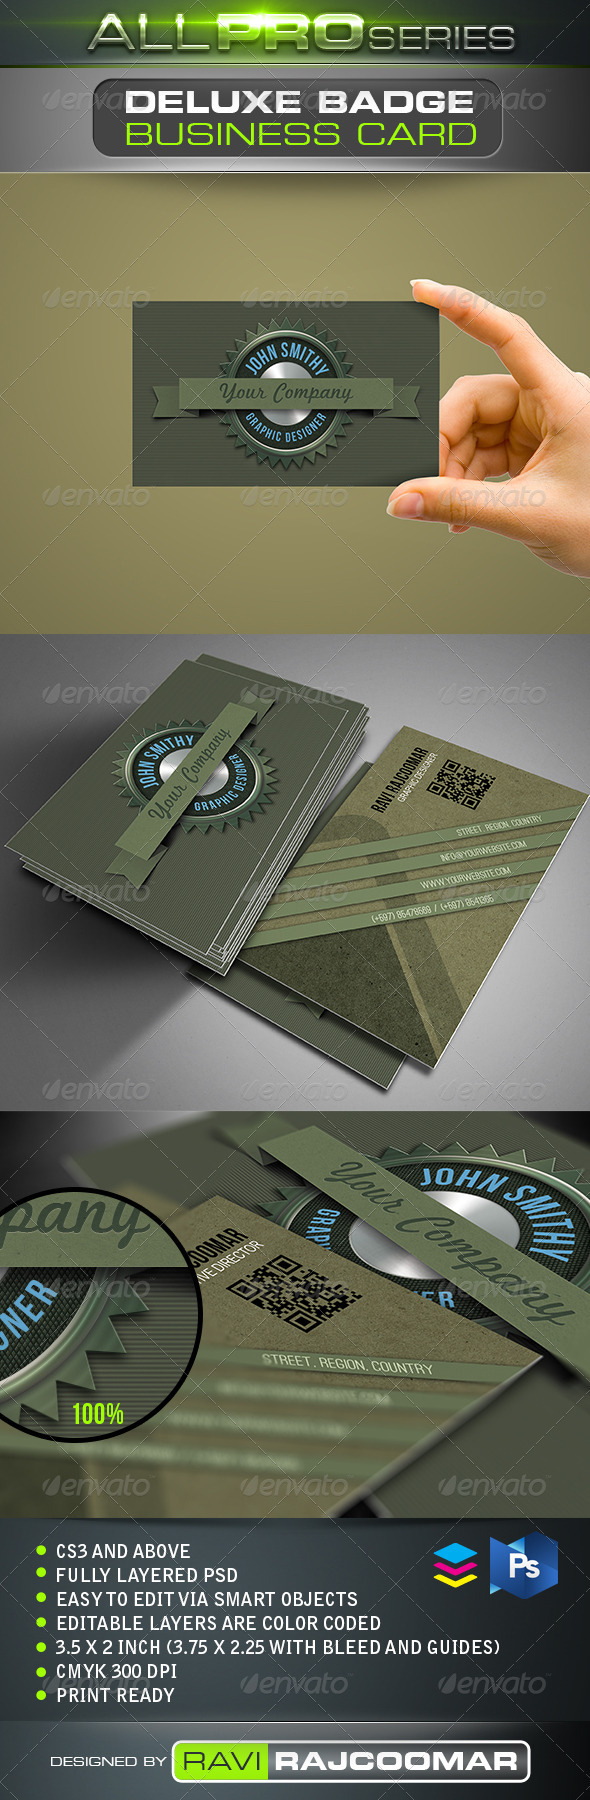 Deluxe Badge Business Card - Business Cards Print Templates